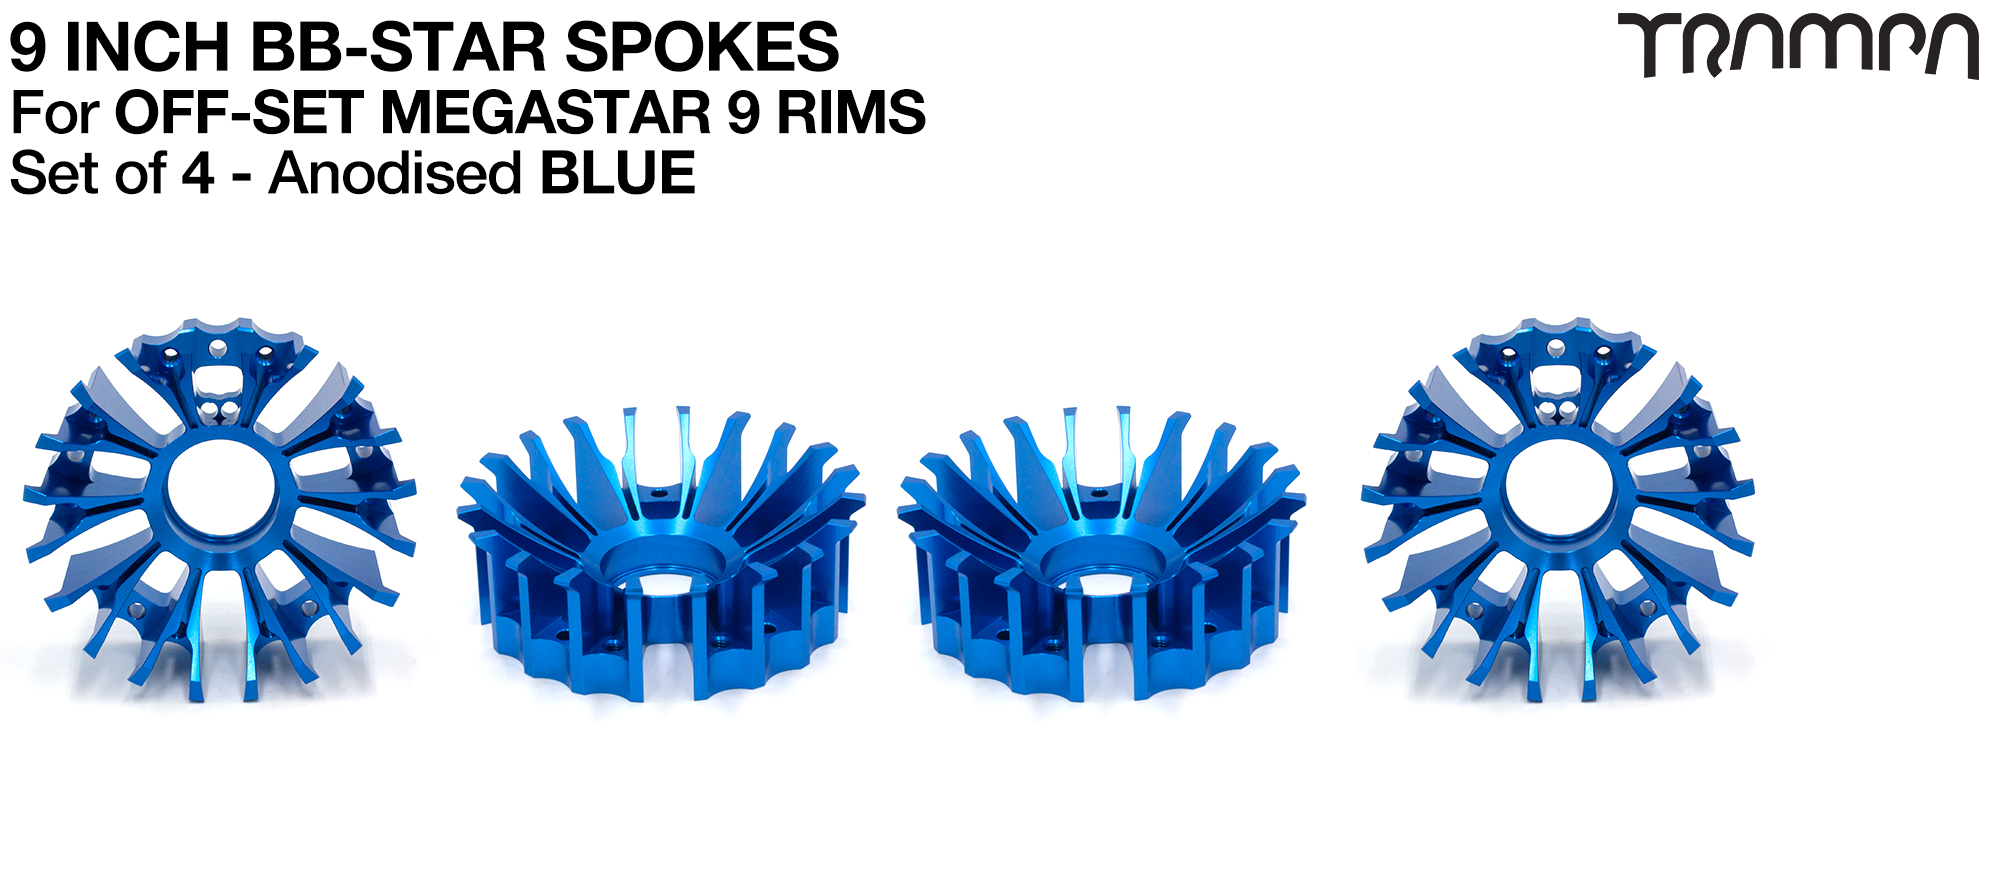 BBStar Spoke for SUPERSTAR or any size MEGASTAR rims - Extruded T6 Aluminium Heat treated & CNC Precision milled -  BLUE